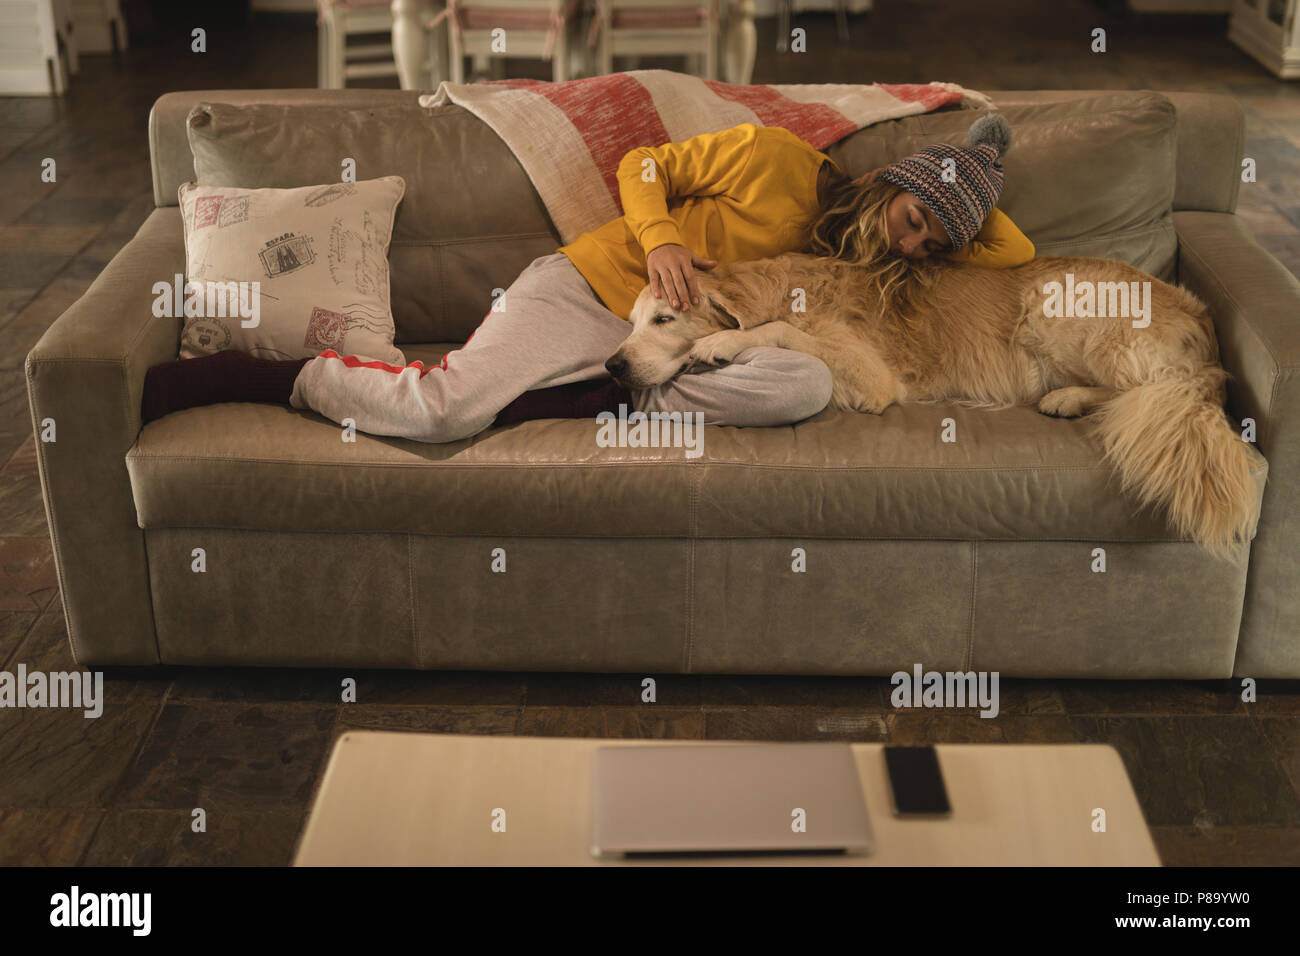 Girl with her dog sleeping in living room - Stock Image